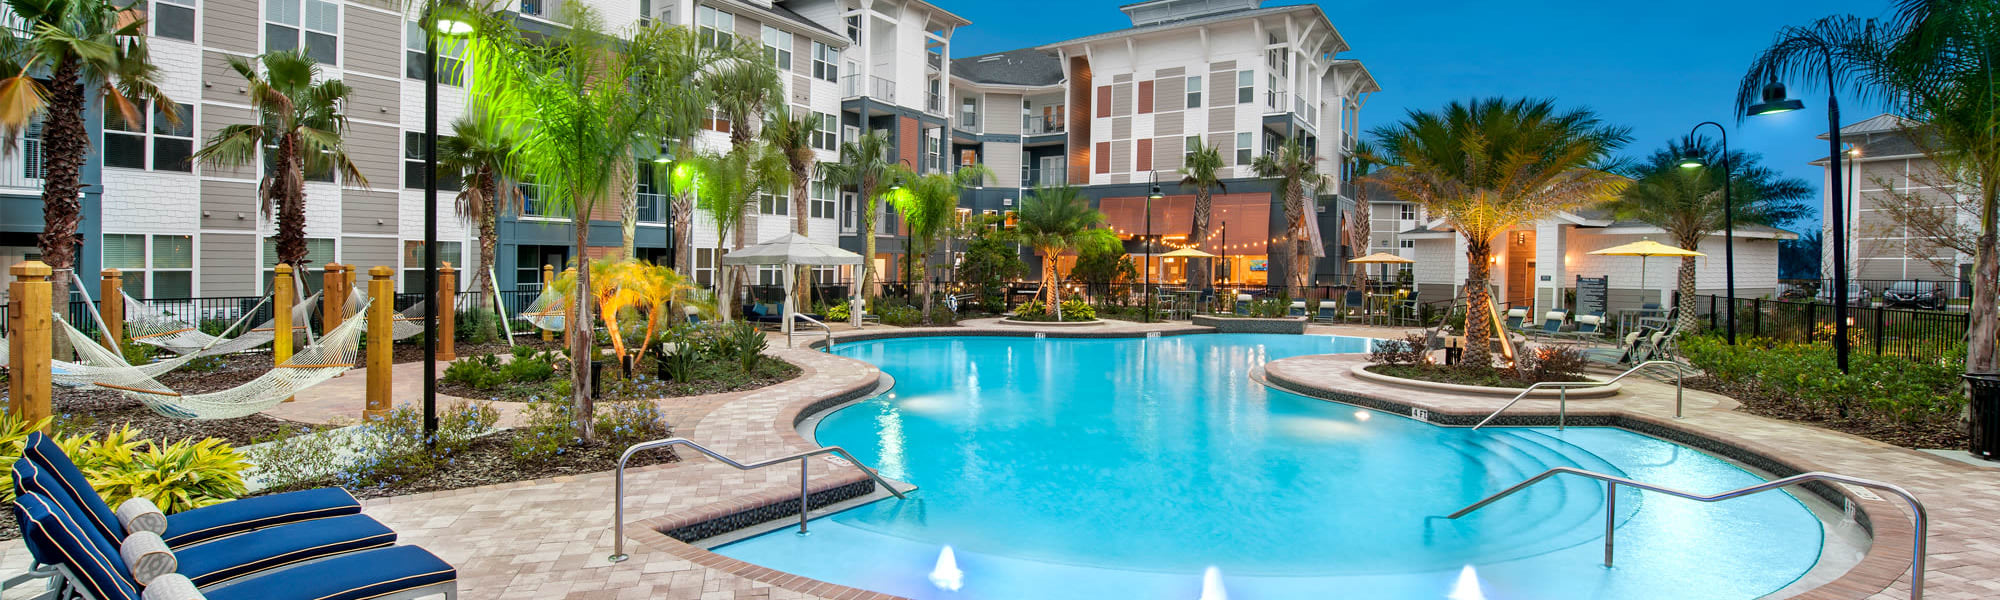 Amenities at Linden Crossroads in Orlando, Florida